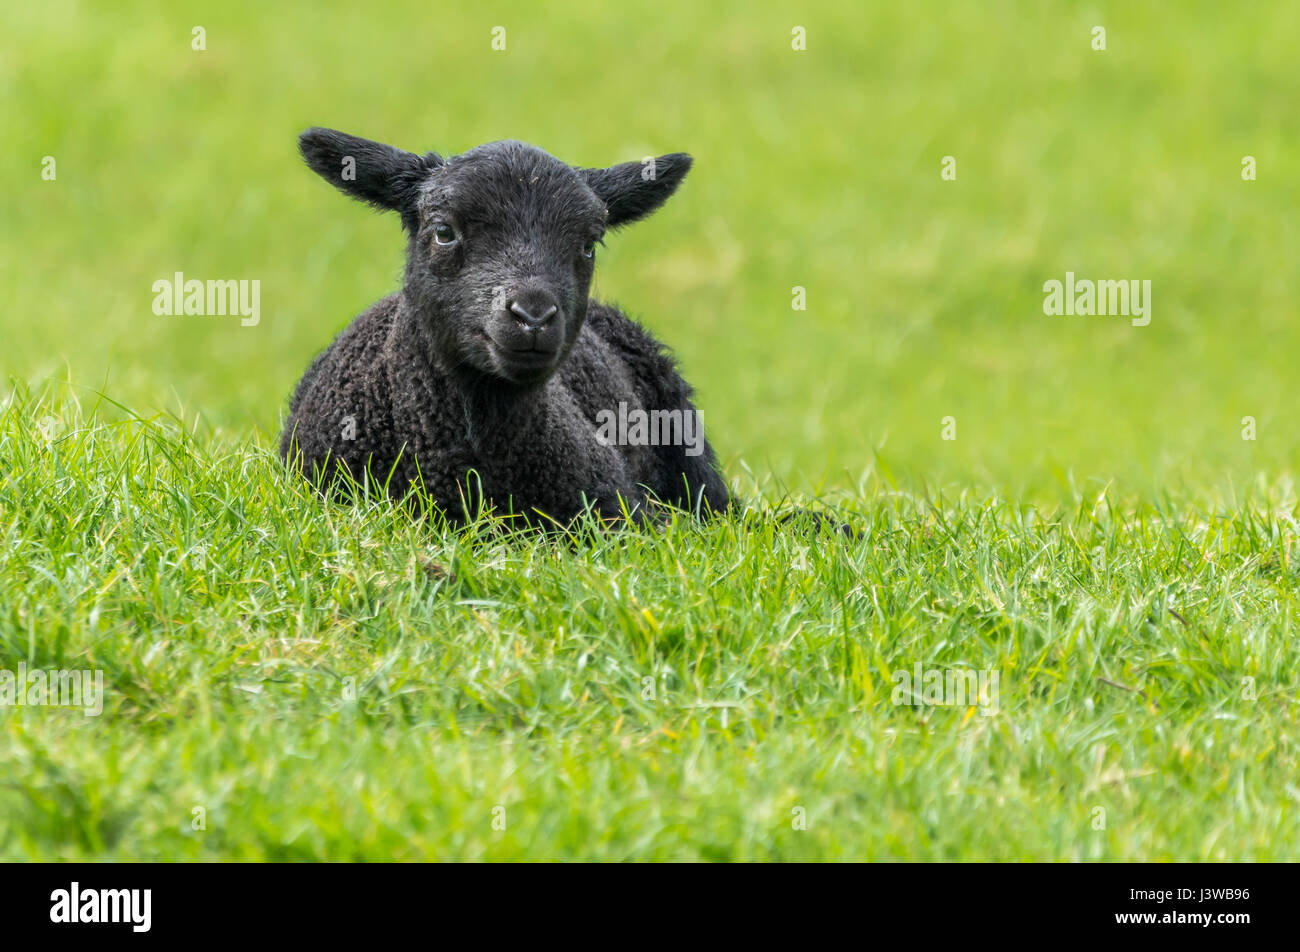 Black lamb resting on grass in a field in Spring in West Sussex, England, UK. Relaxing, resting, relaxed, content, - Stock Image